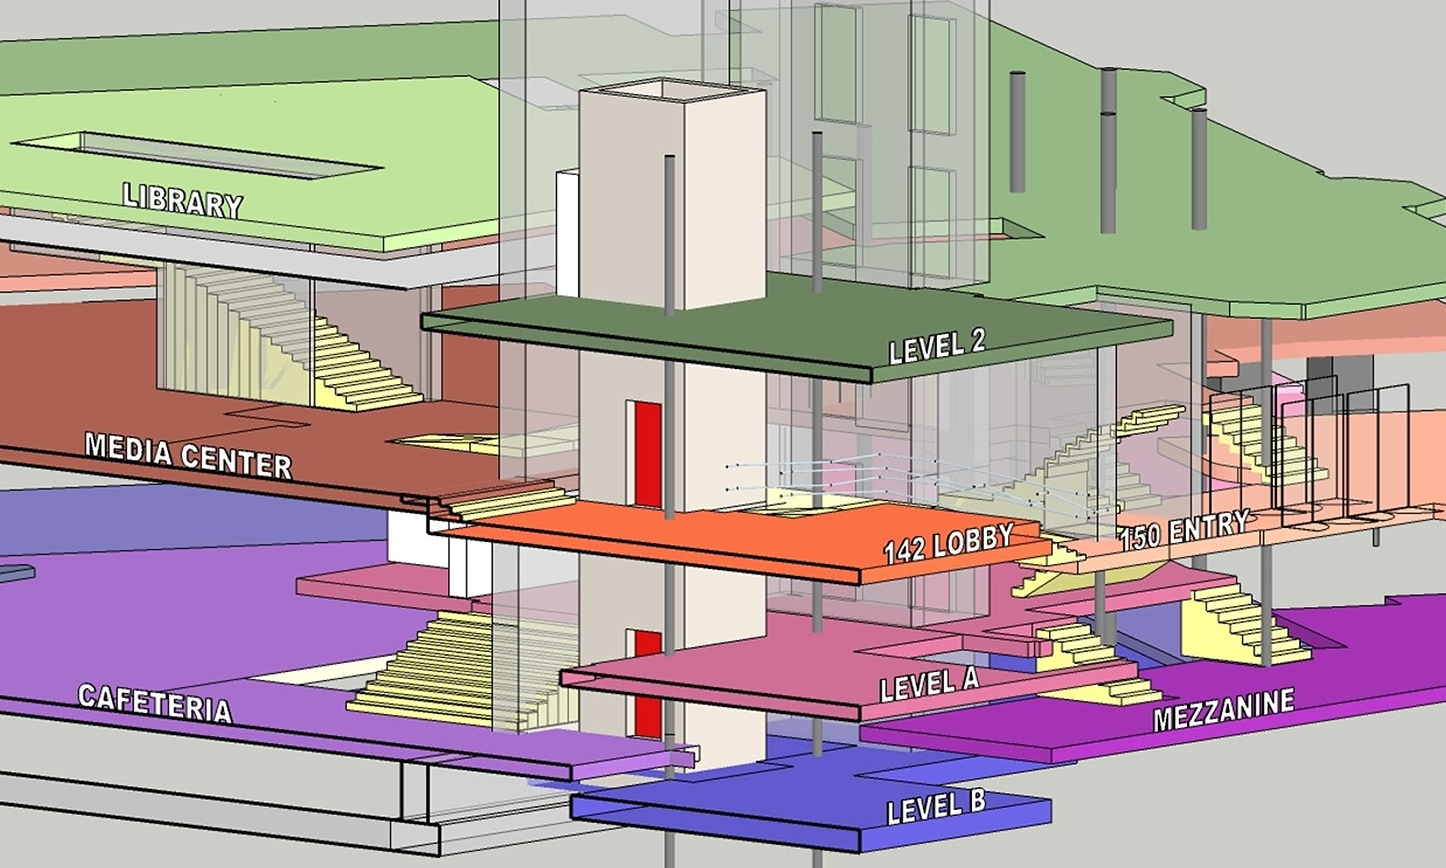 Model diagram showing the complex's different levels and the elevator that was added in Phase 1 of our renovation.